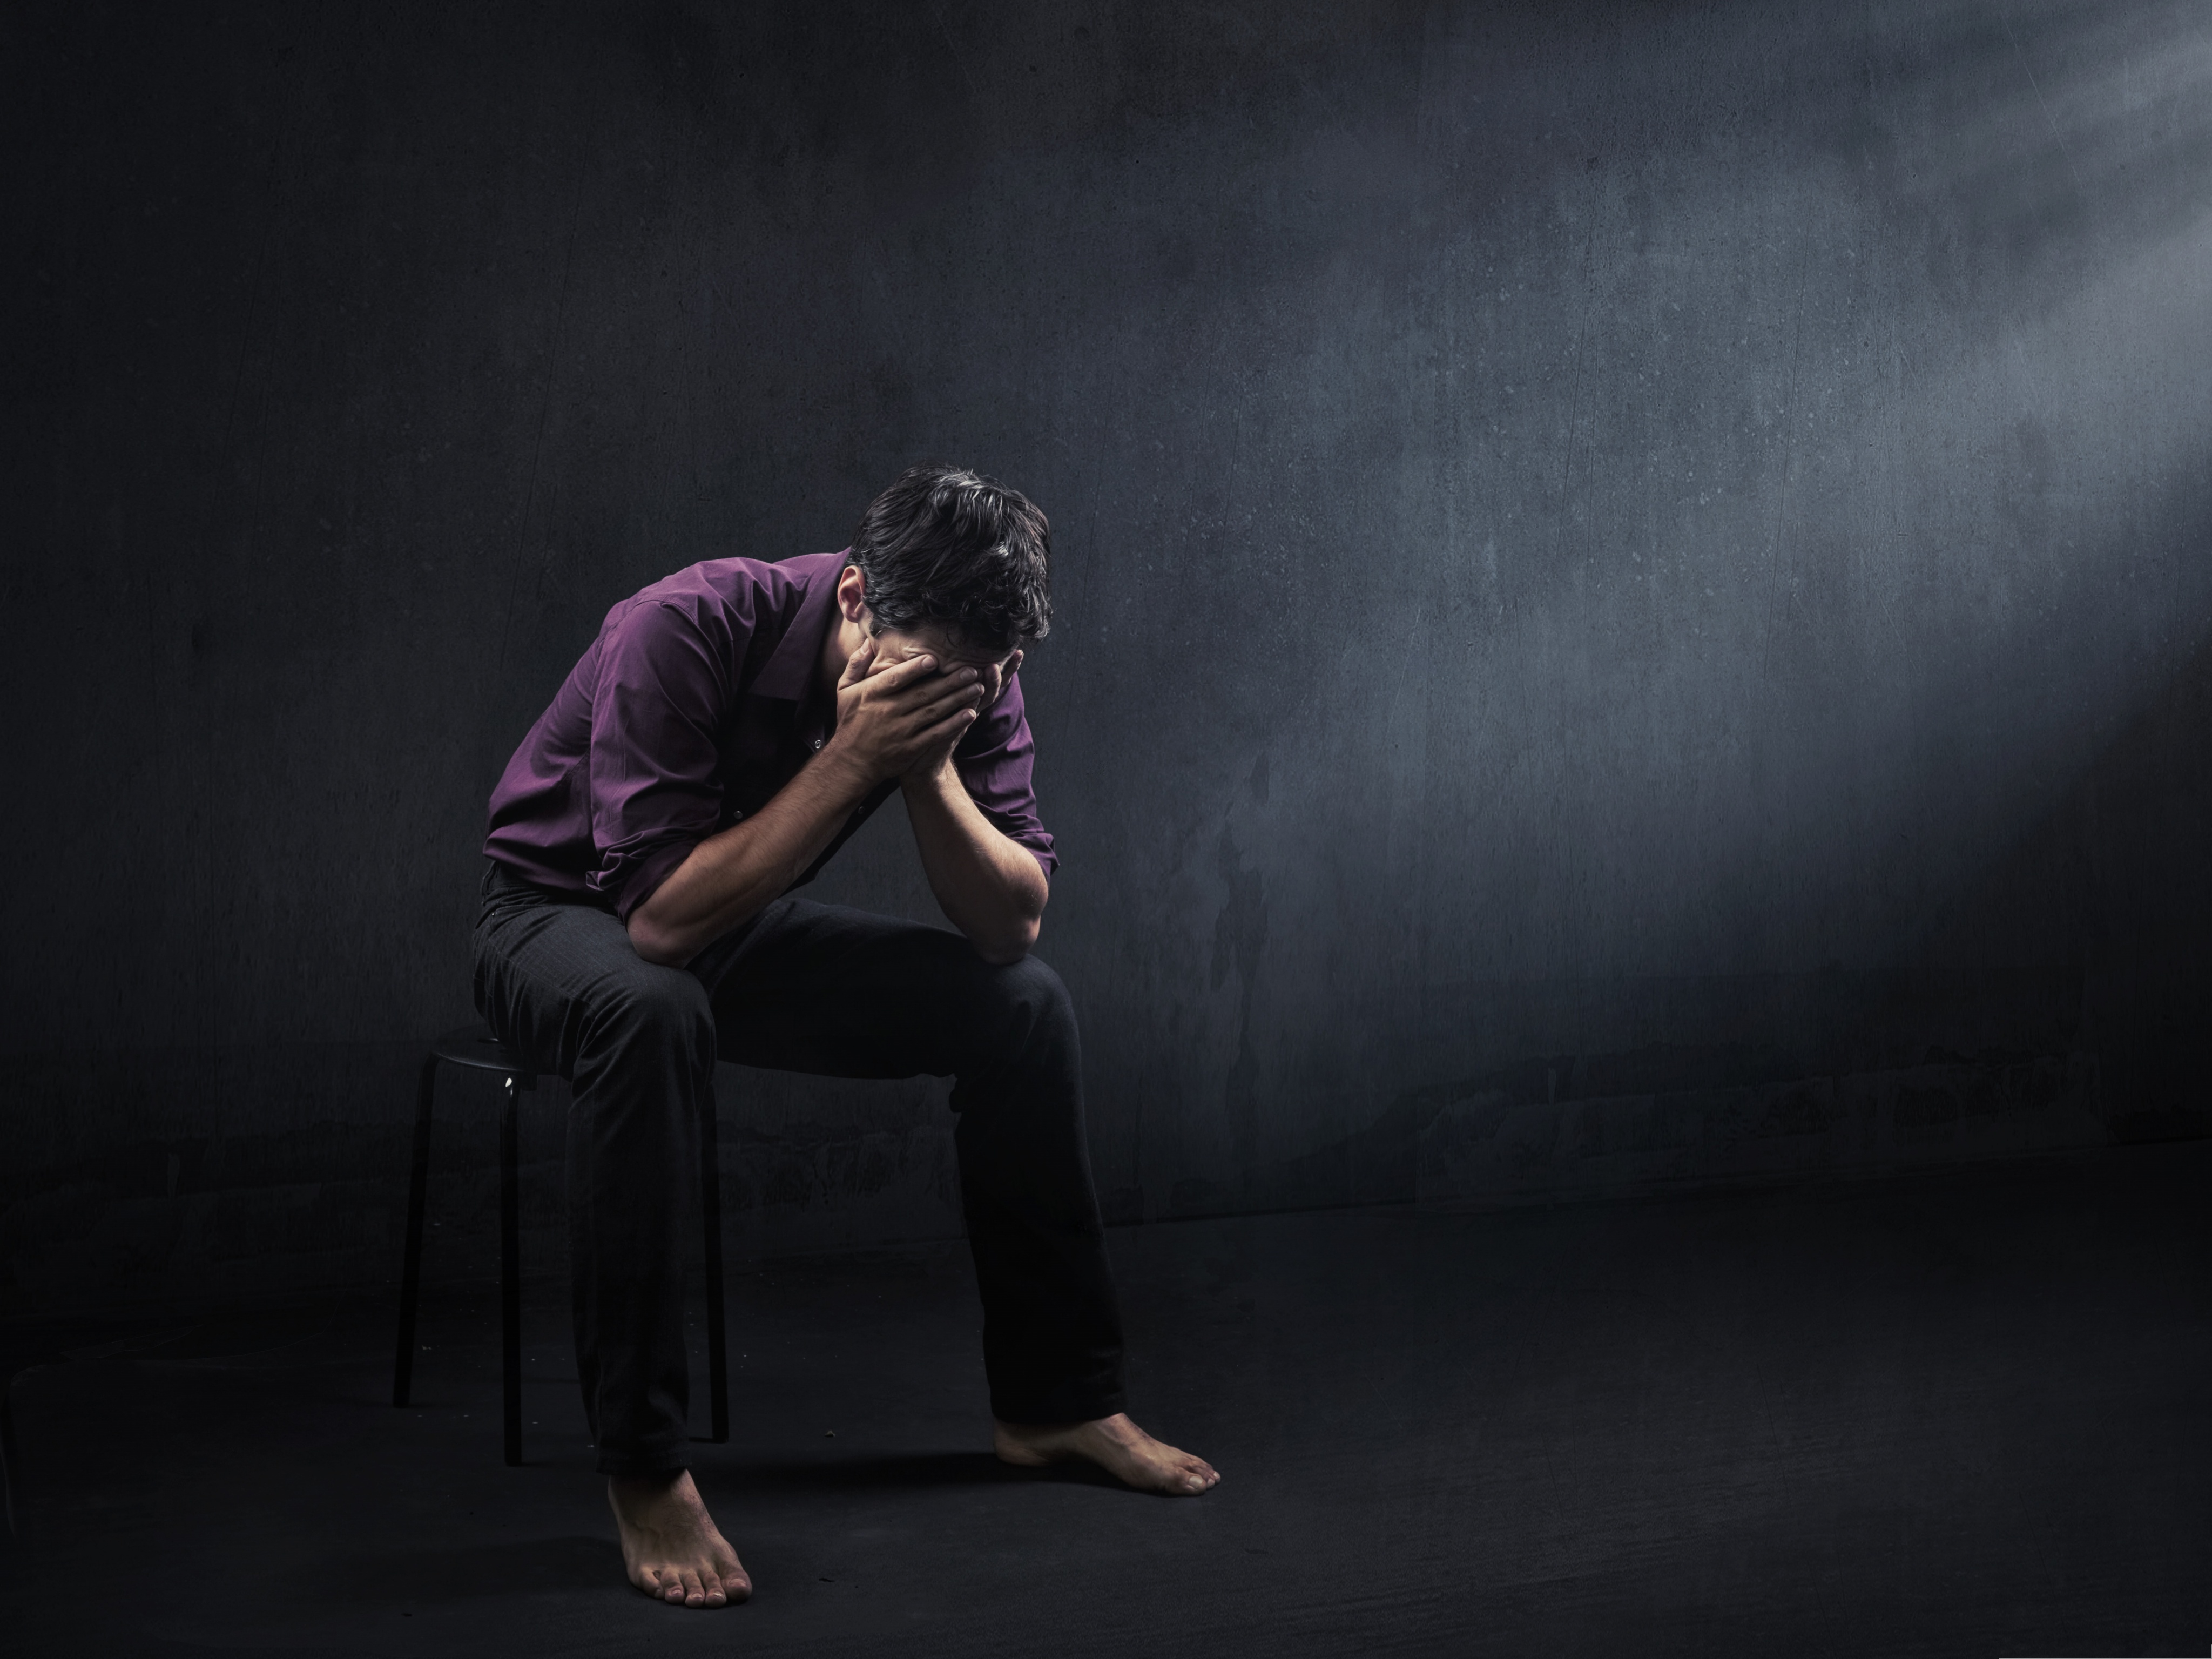 Background Wallpaper for Computer Depressed Male Come on Just Cheer 4096x3072